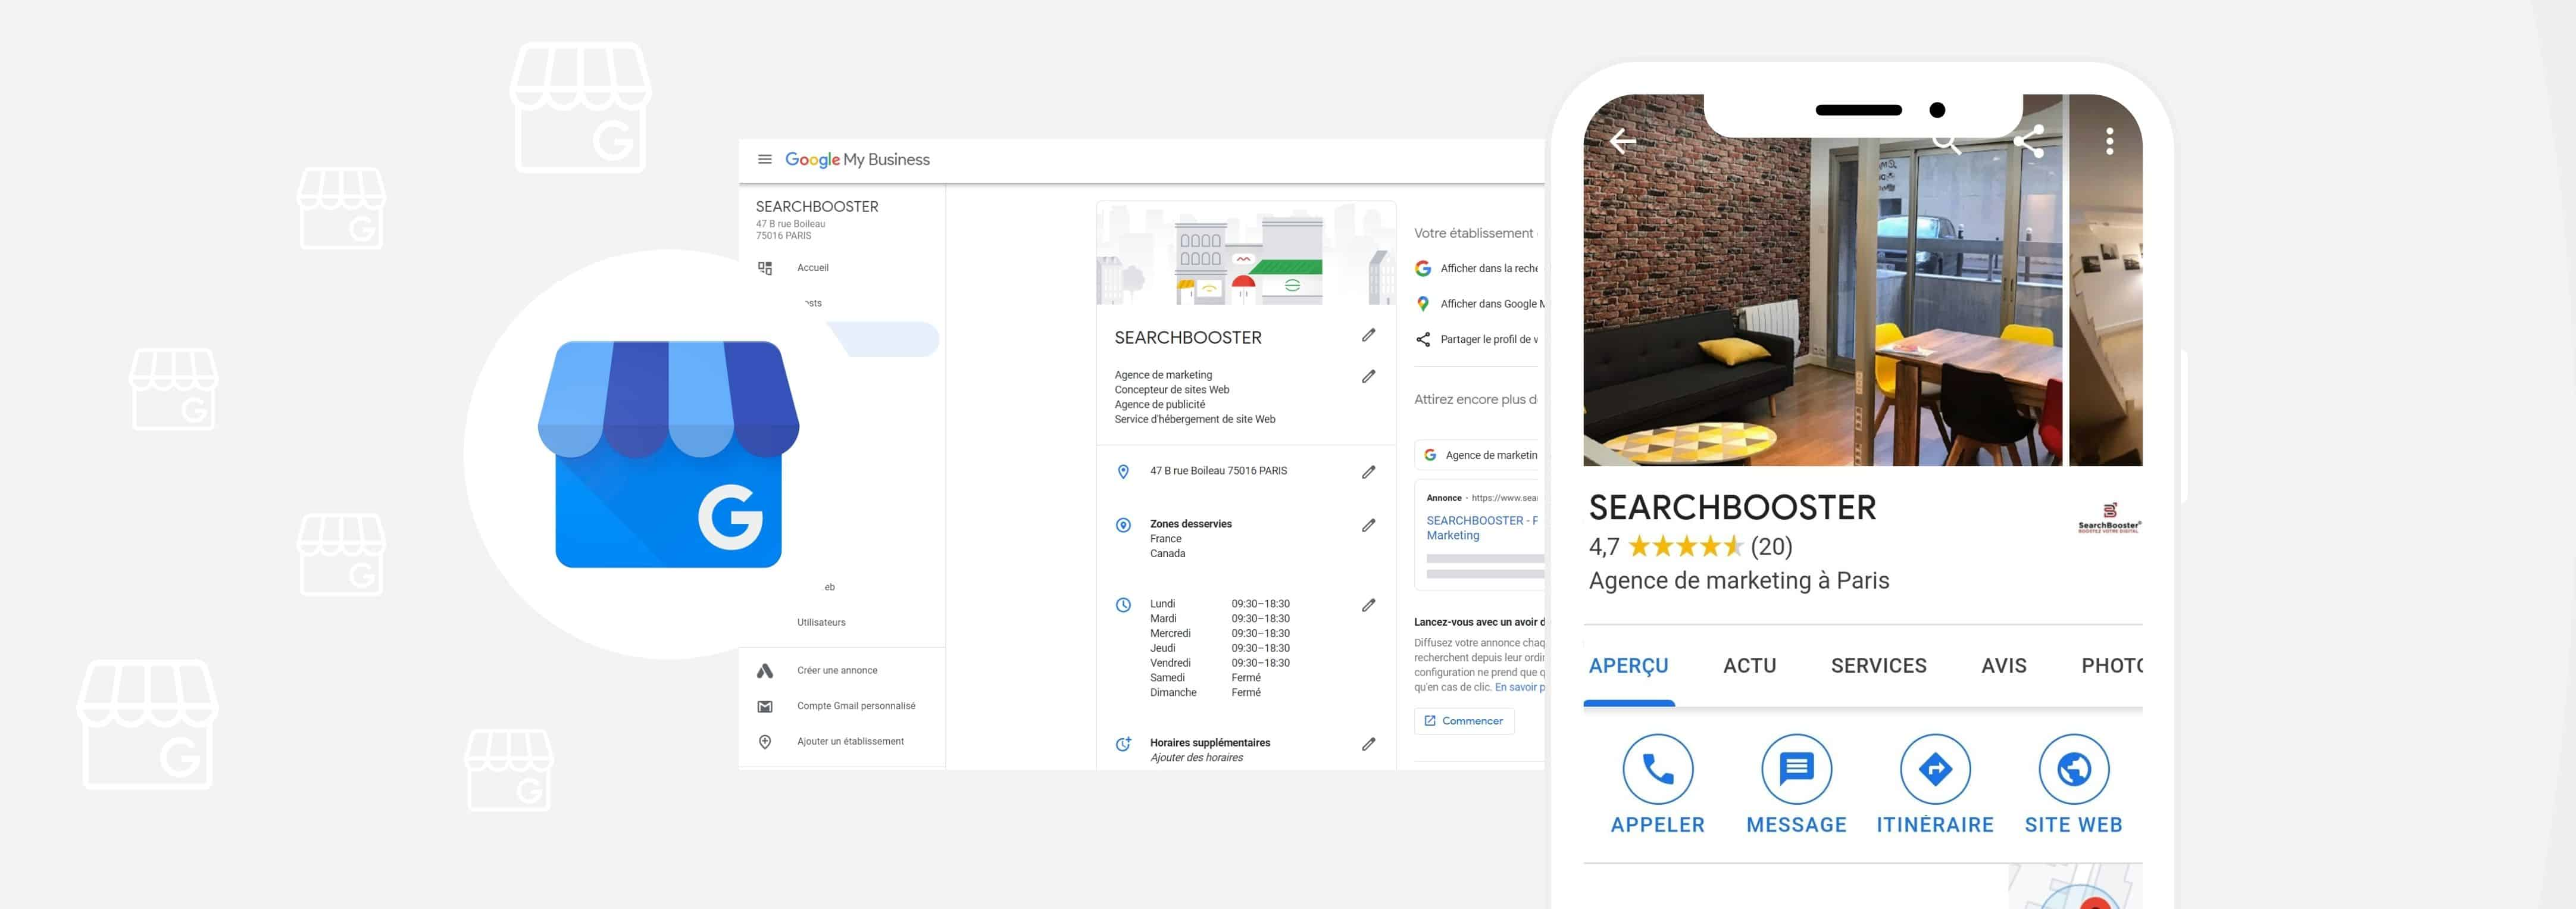 Google My Business by Searchbooster